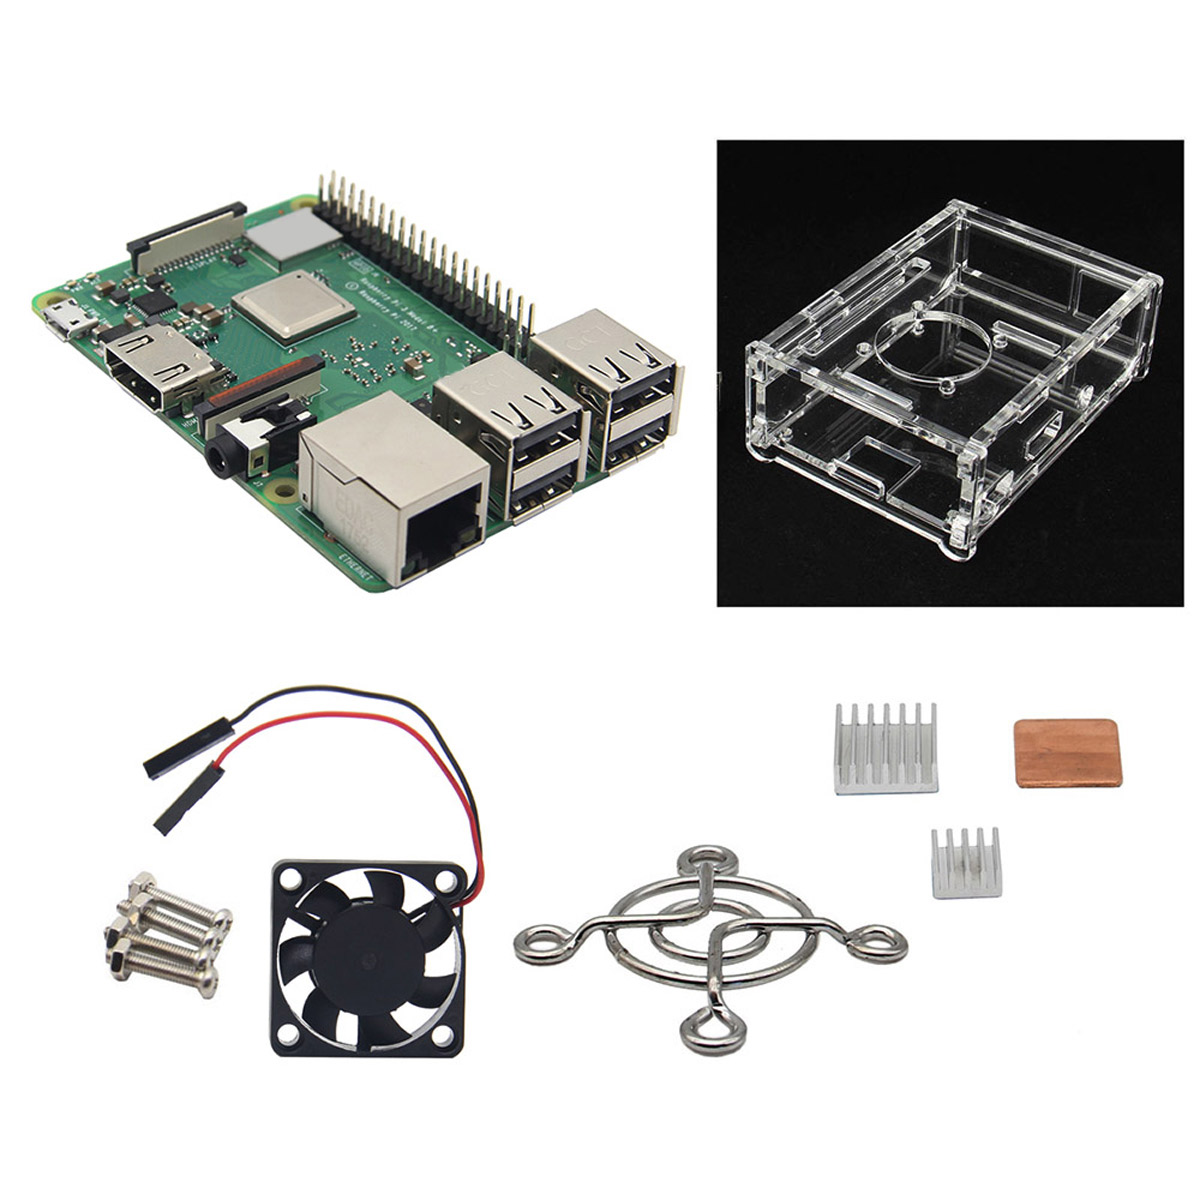 4 in 1 kit for Raspberry Pi 3 Model B+plus Board 1GB LPDDR2 BCM2837B0 Ras PI3 B,PI 3B with Bluetooth 5V2.5A 5V3A raspberry pi 3 model b starter kit pi 3 board pi 3 case eu power plug with logo heatsinks pi3 b pi 3b with wifi bluetooth